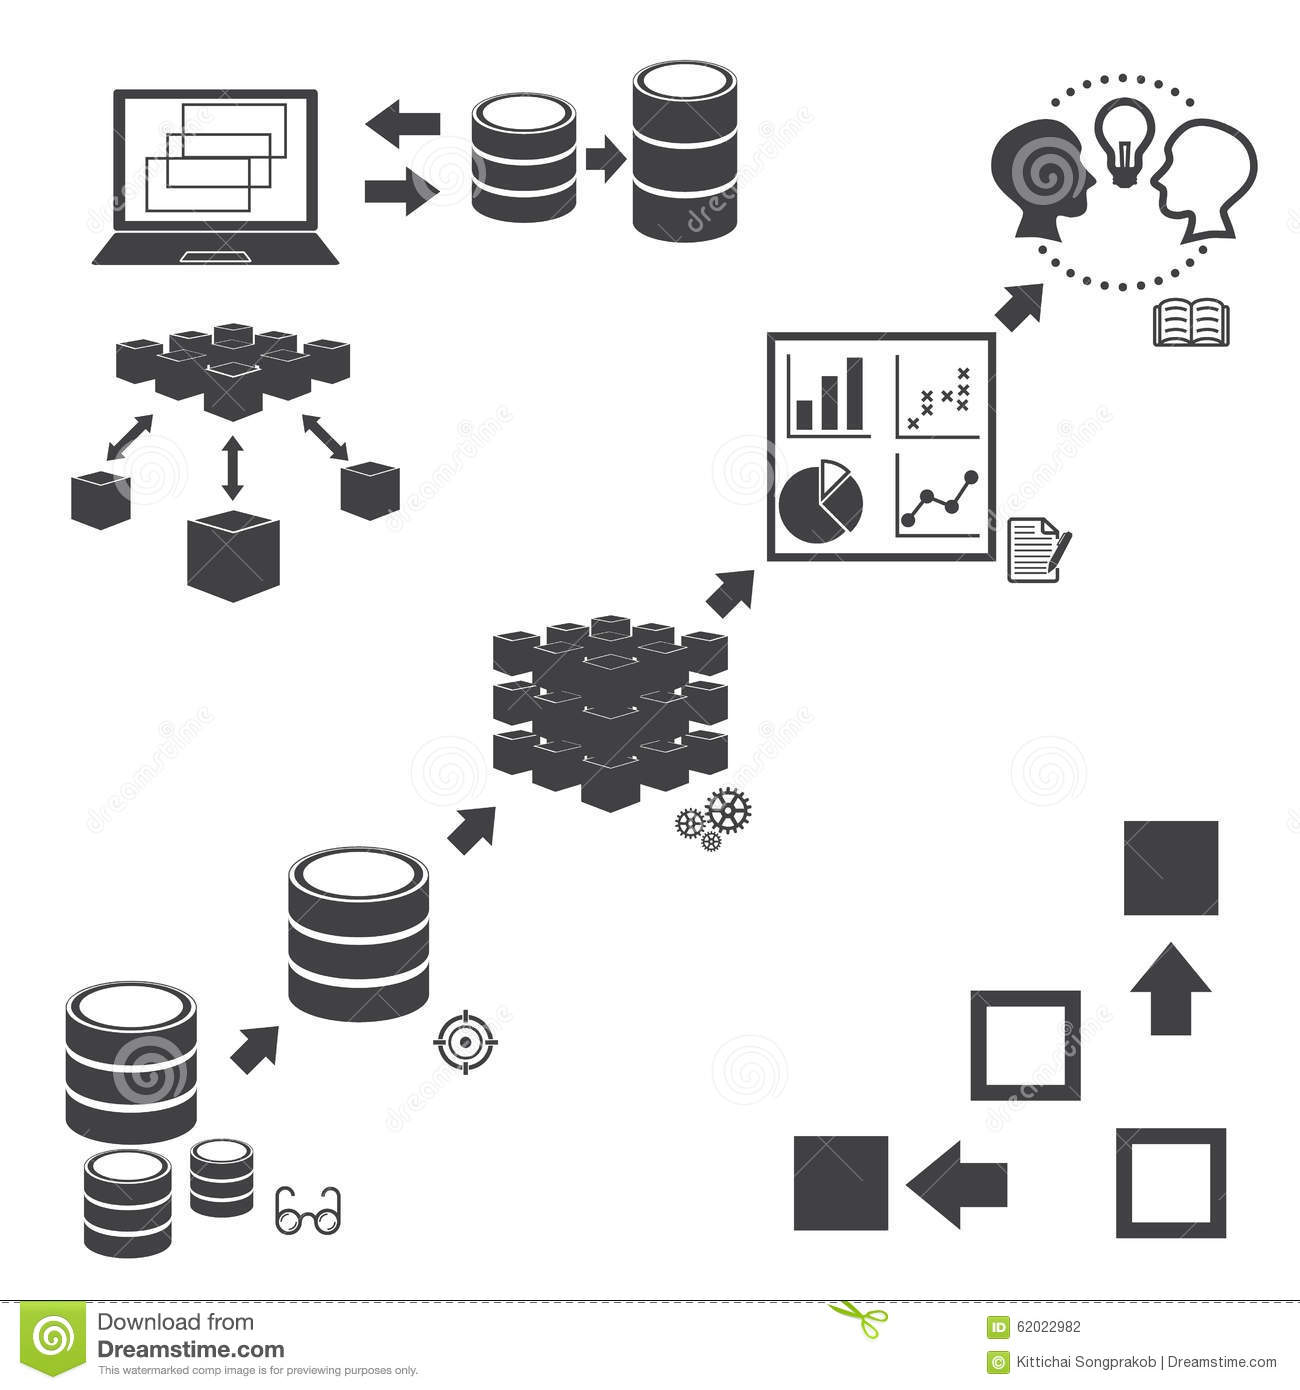 Jtids in addition Stock Photos Hacker Word Cloud Image10977623 in addition Template Mall Floor Plan also Markskilton blogspot as well Nasa Organizational Structure. on data center concept